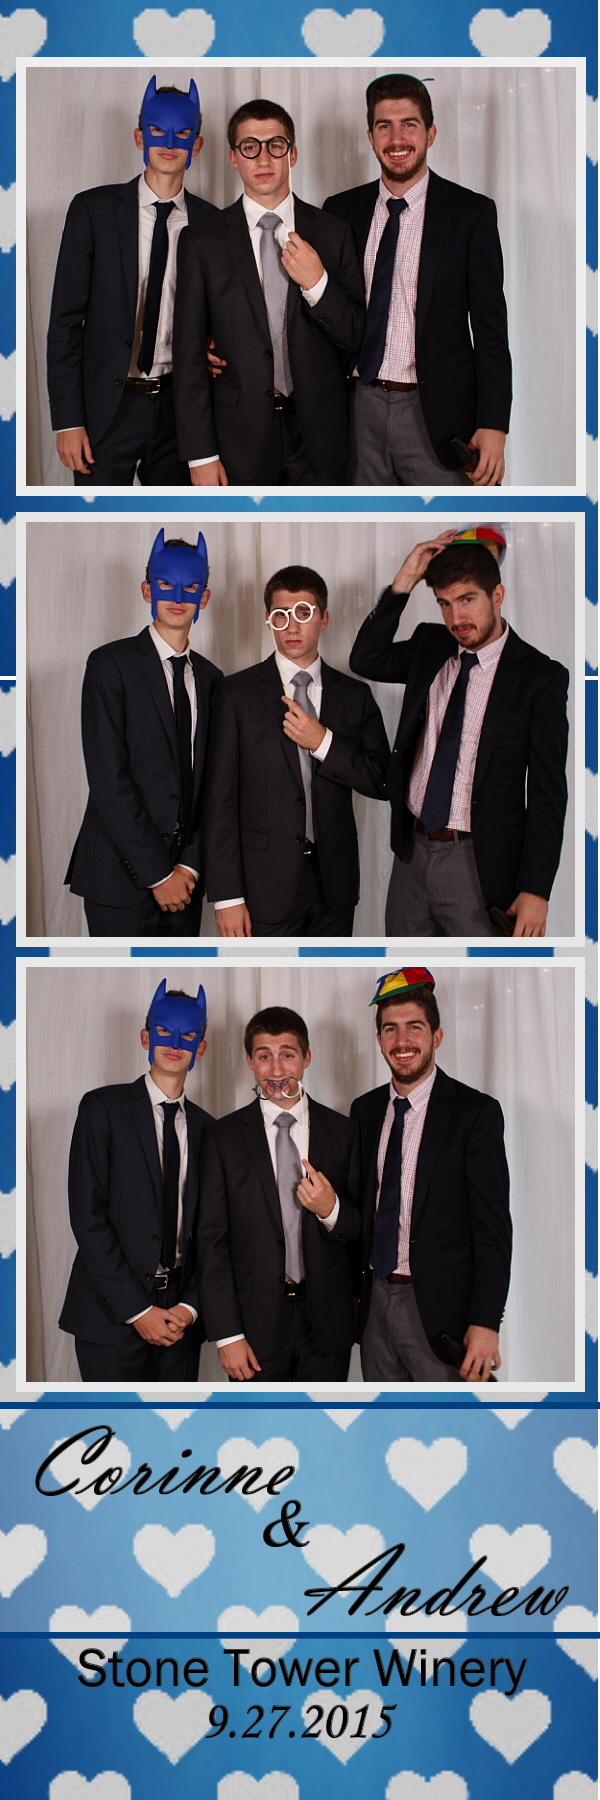 Guest House Events Photo Booth C&A (1).jpg